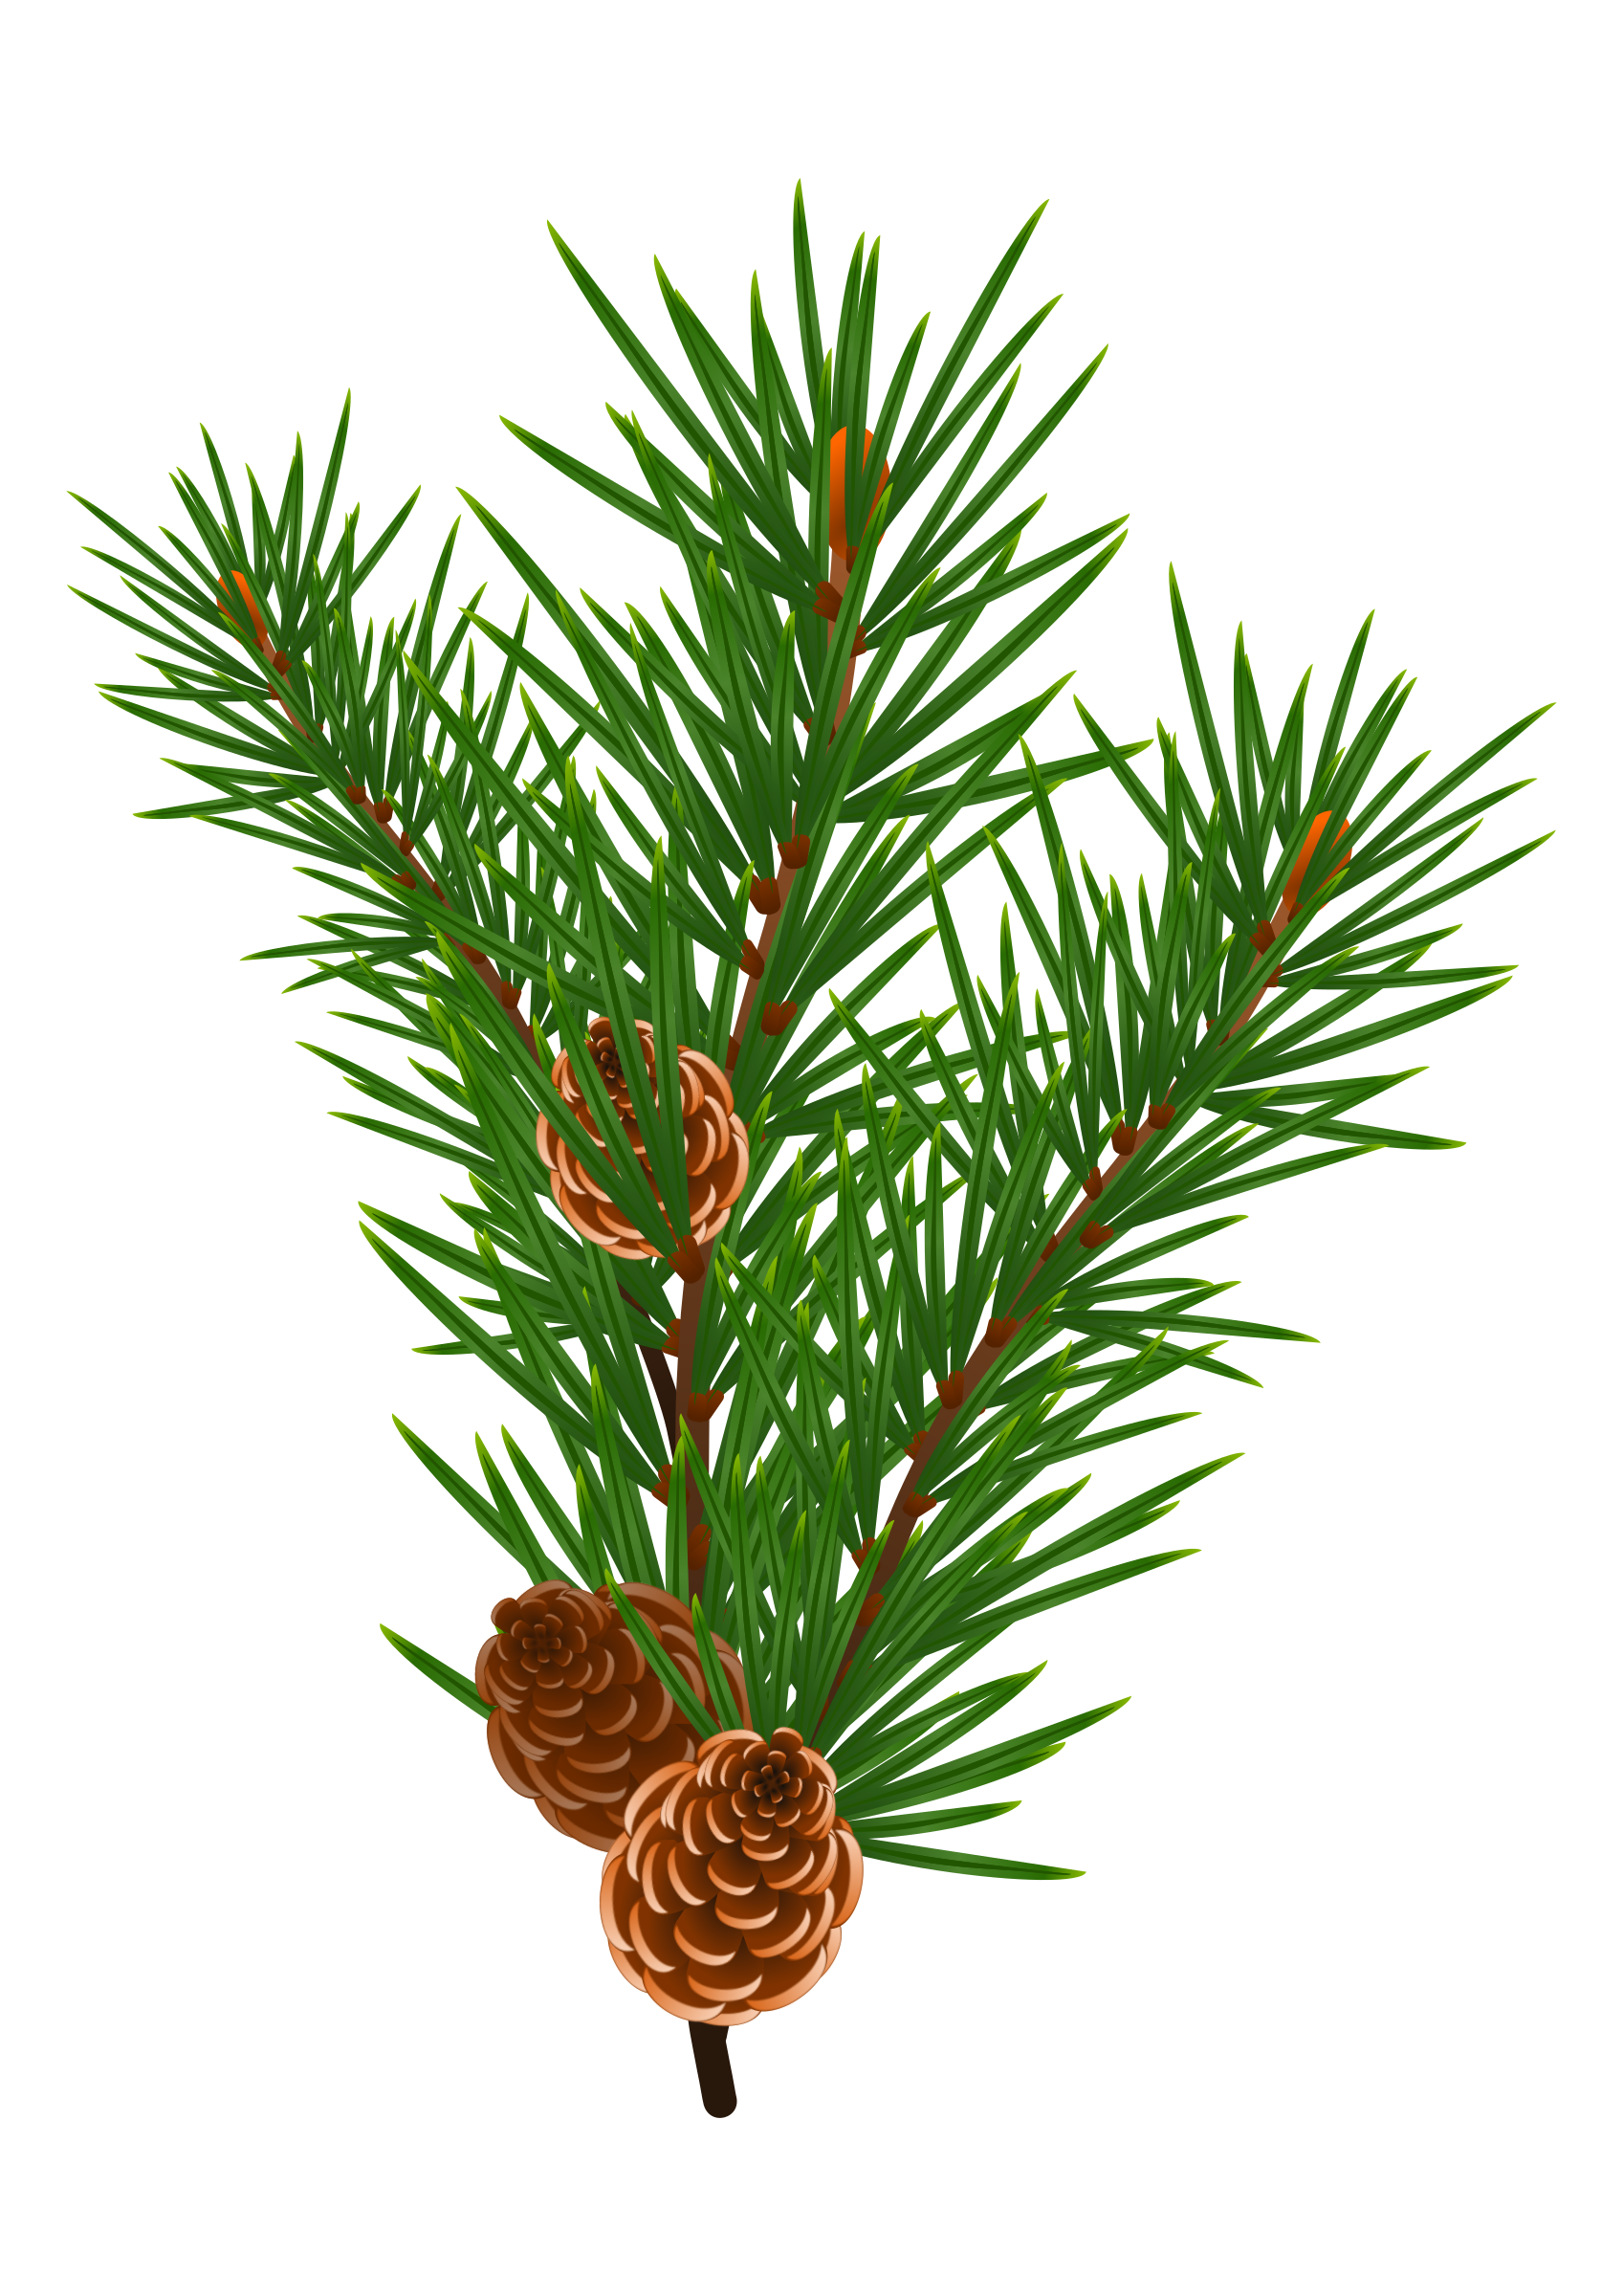 Pine Branch with Pine Cones Vector Clipart.